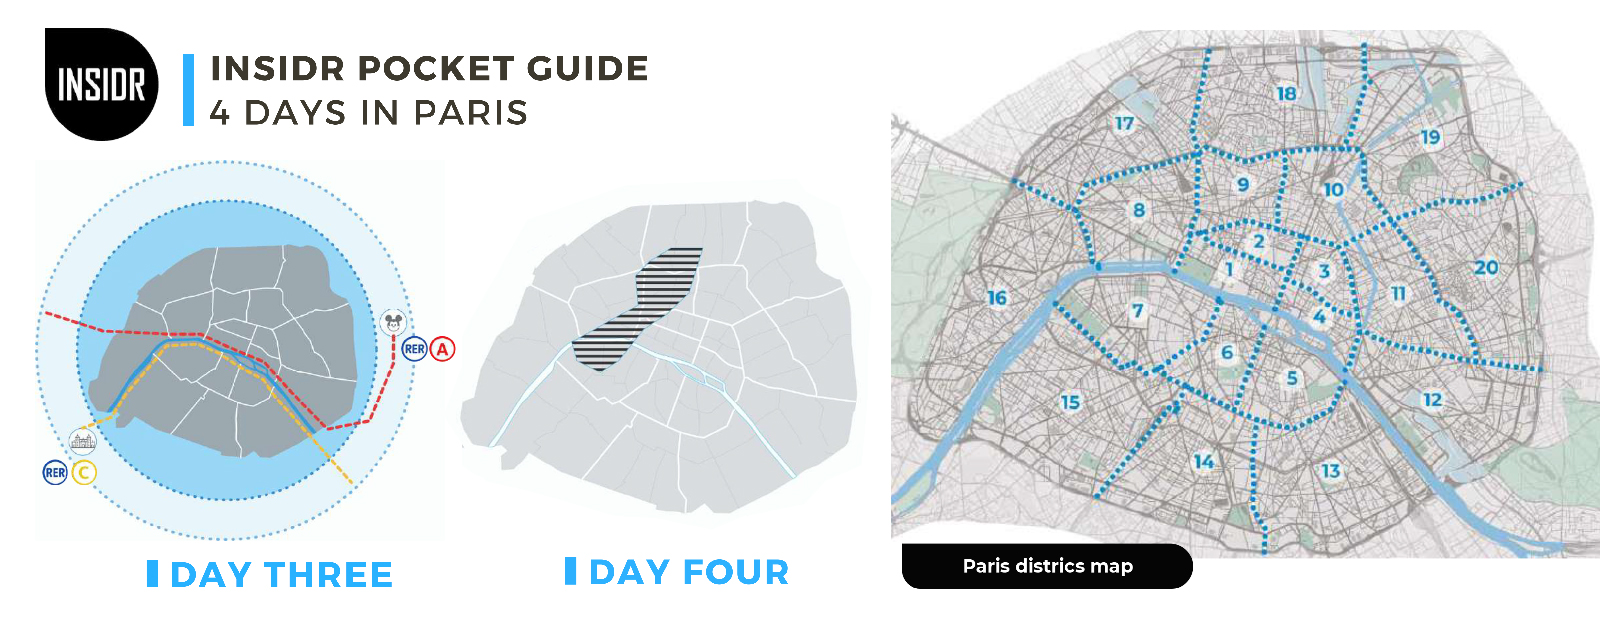 Paris 4 Days Itinerary 2019 - INSIDR Day Three & Day Four In Paris Pocket Guide